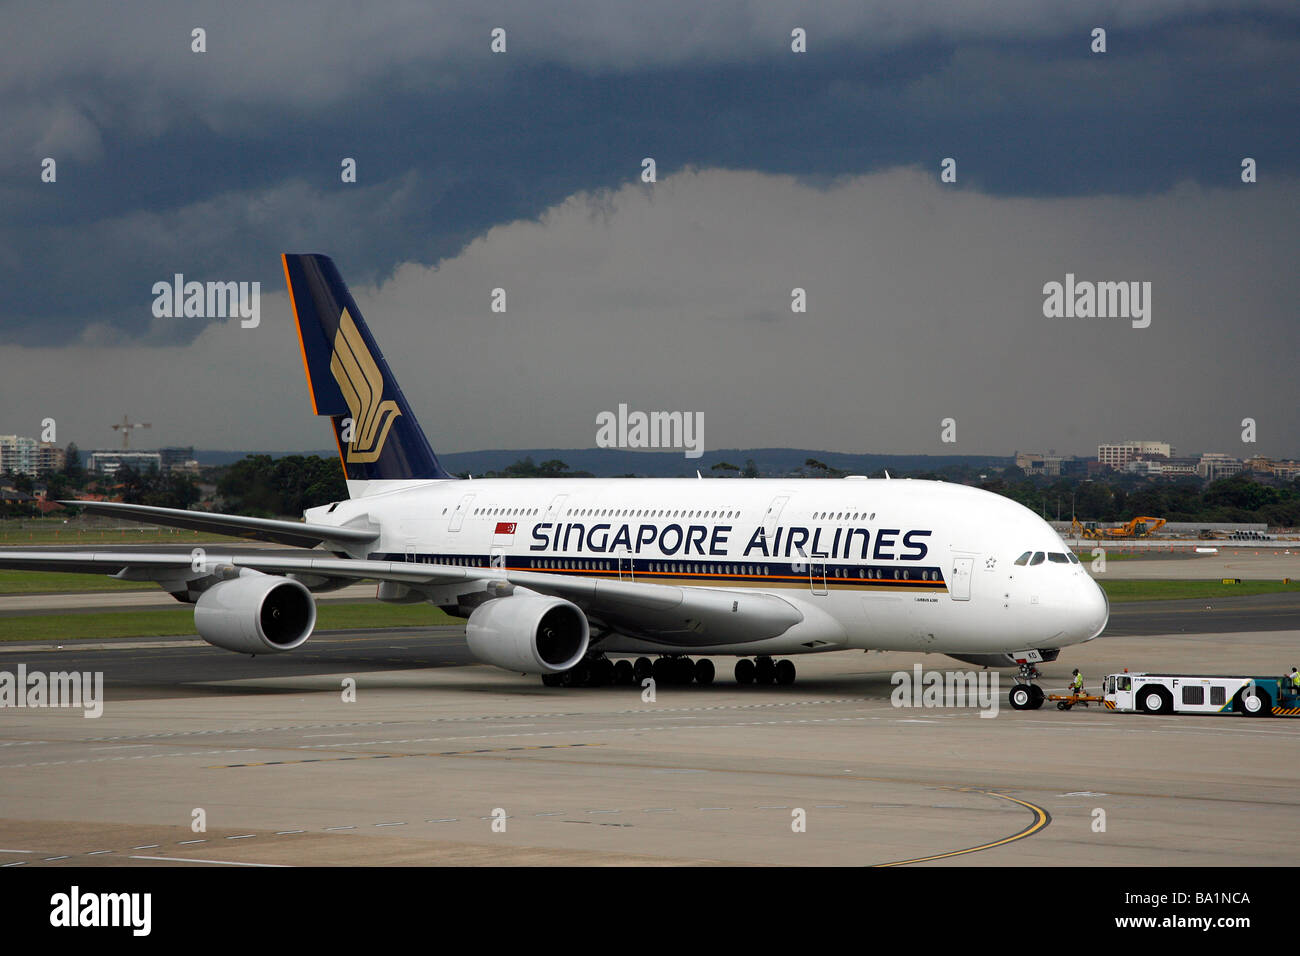 A Singapore Airlines Airbus A380 Superjumbo aircraft sits on the tarmac at Sydney Kingsford Smith International - Stock Image